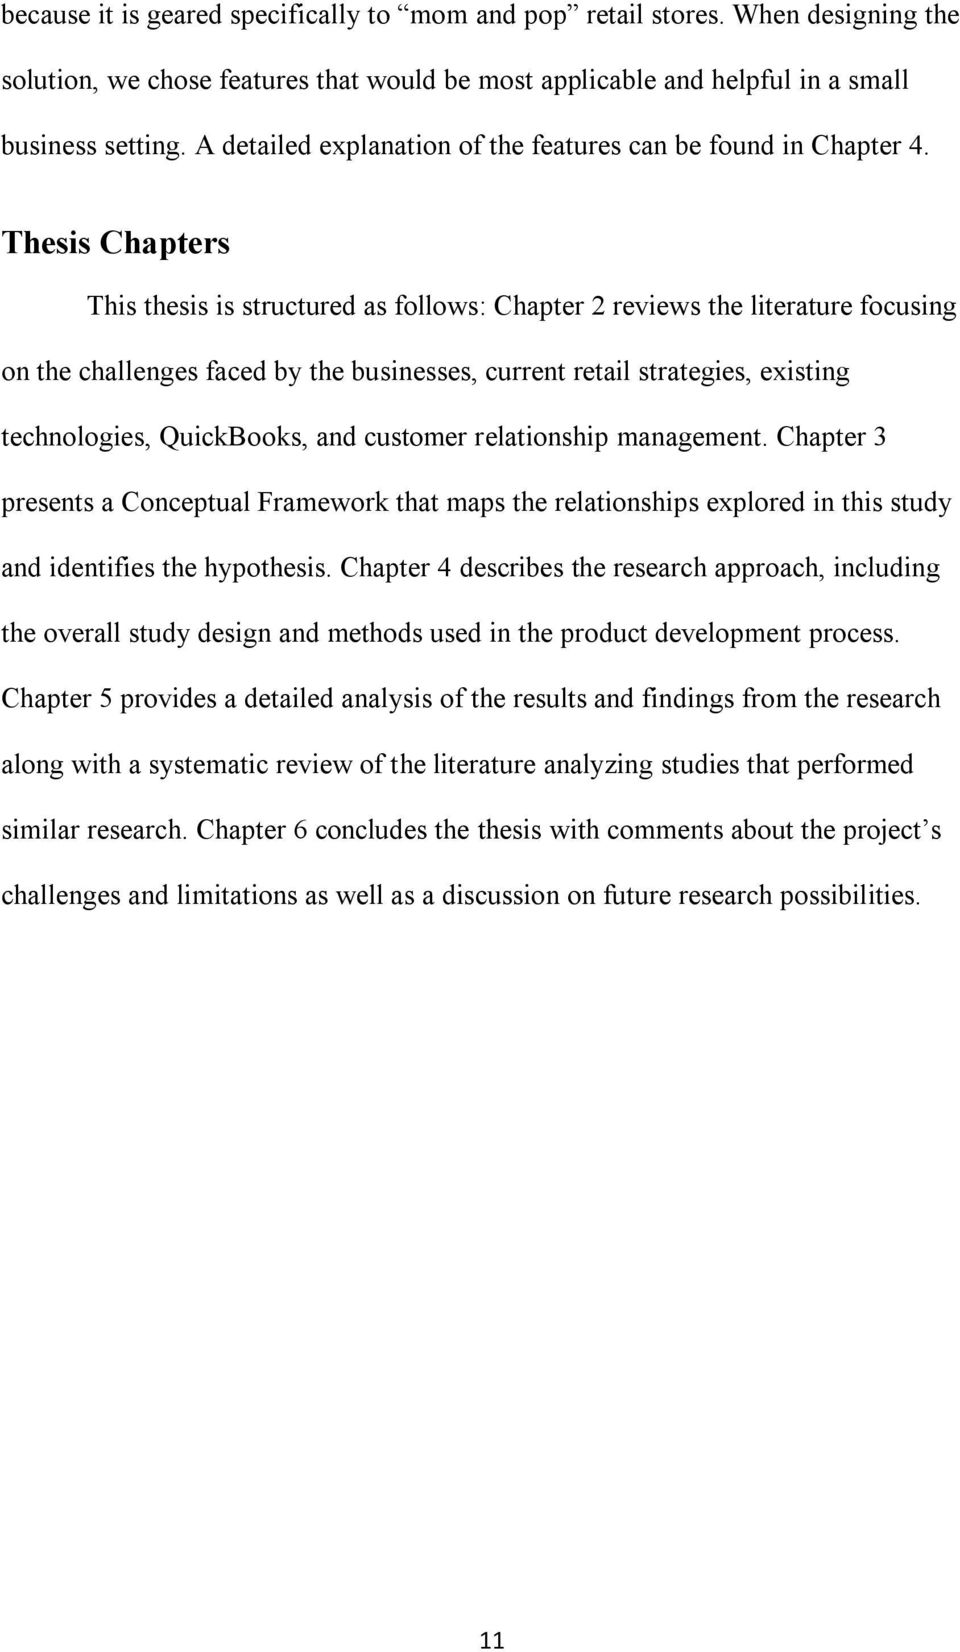 QuickBooks, and customer relationship management. Chapter 3 presents a Conceptual Framework that maps the relationships explored in this study and identifies the hypothesis.